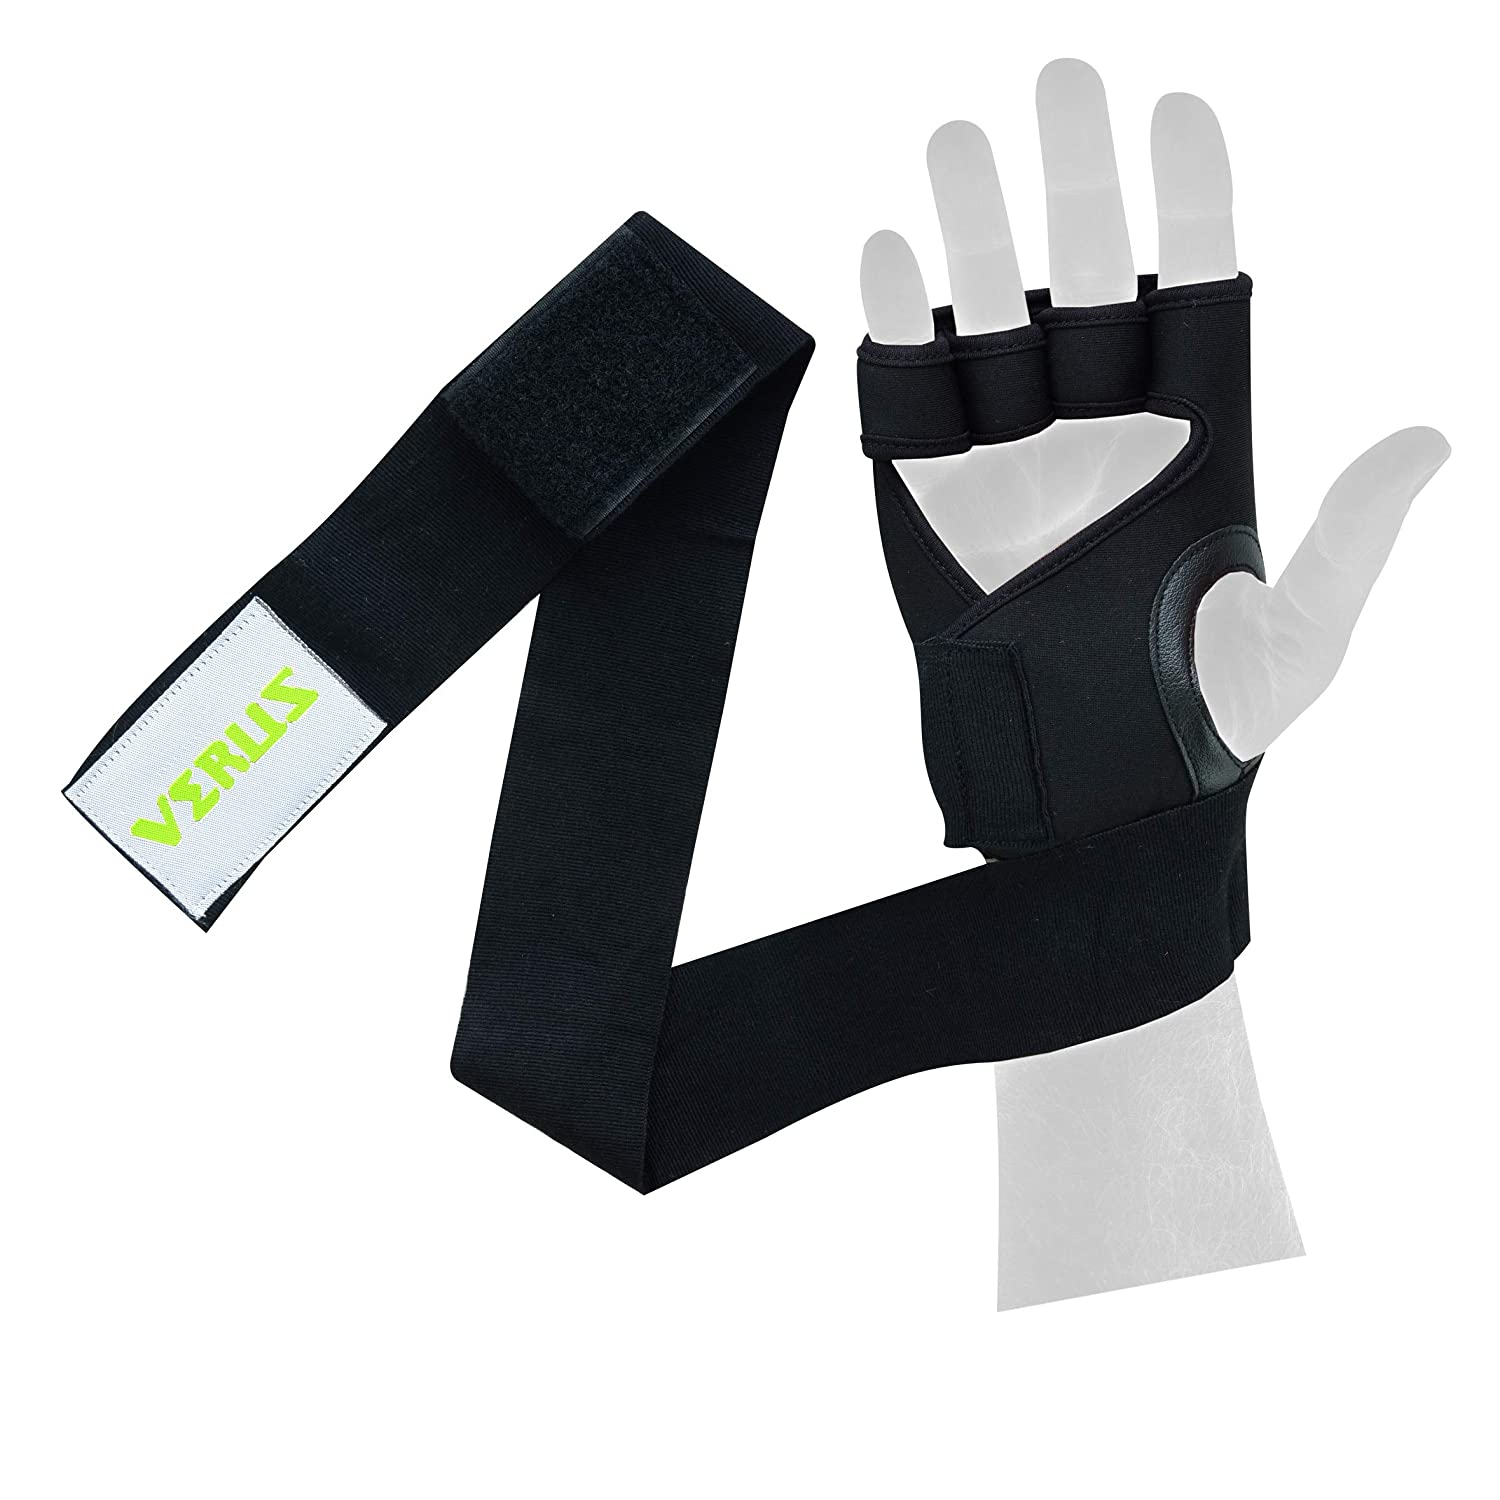 Verus by Lakeview Neoprene Gel Wrap Weightlifting Cross-fit Bodybuilding Fitness Training Gloves